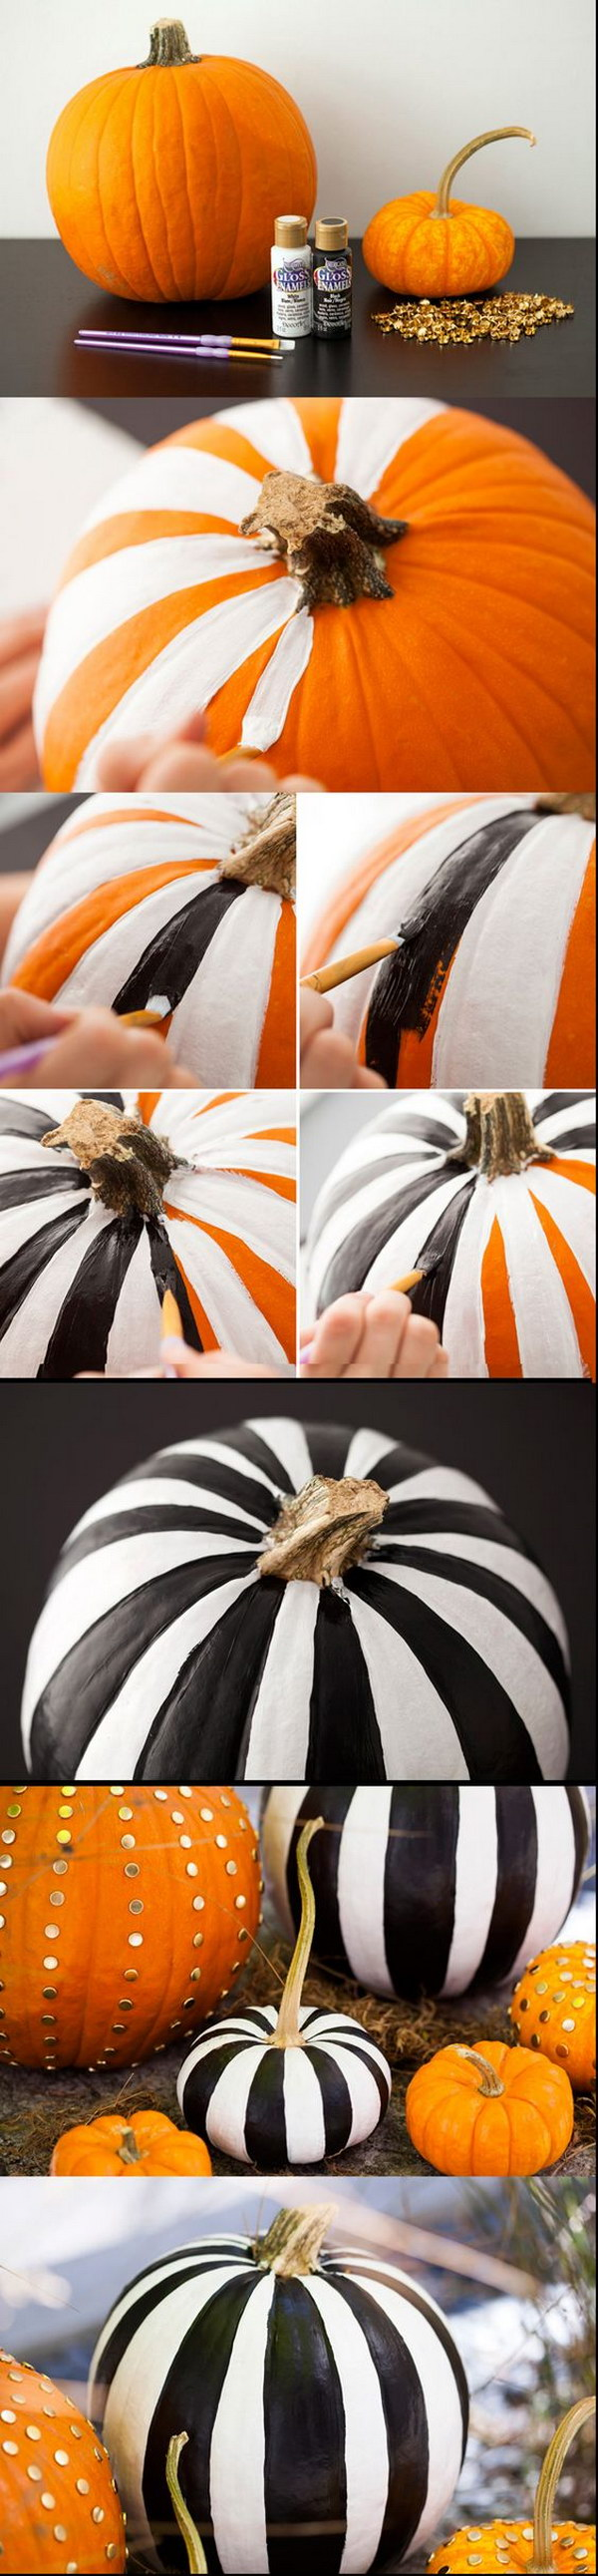 Black & White Striped Pumpkins.